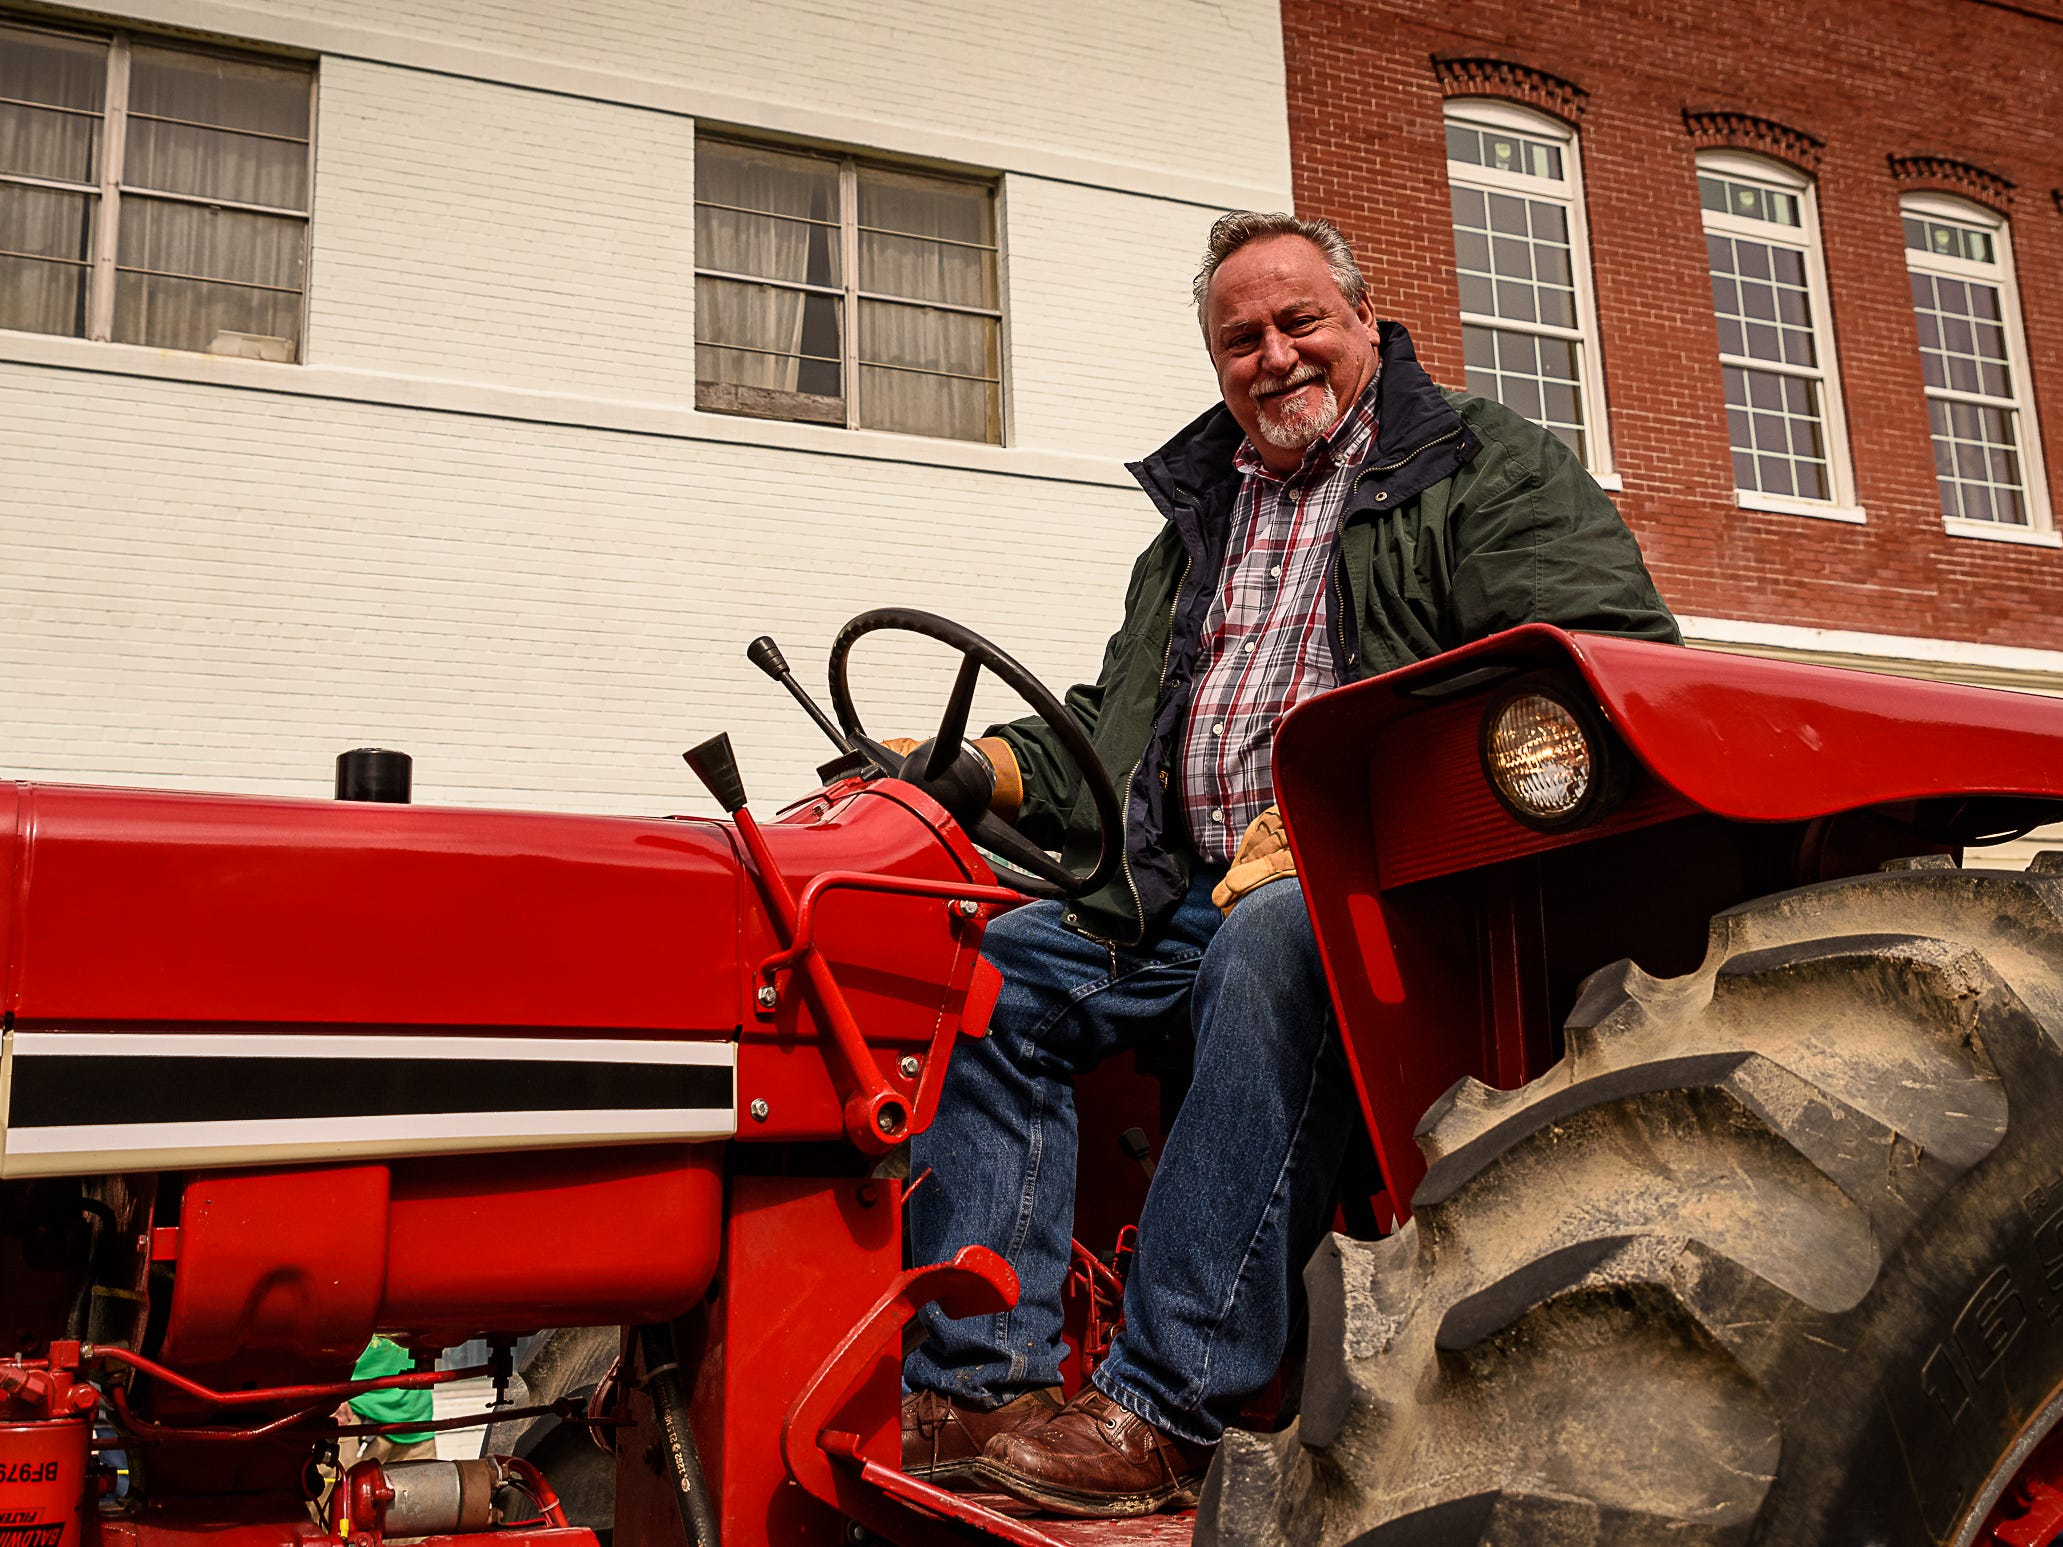 A member of the Peninsula Tractor Organization  shows off his vintage tractor during the Onancock parade.